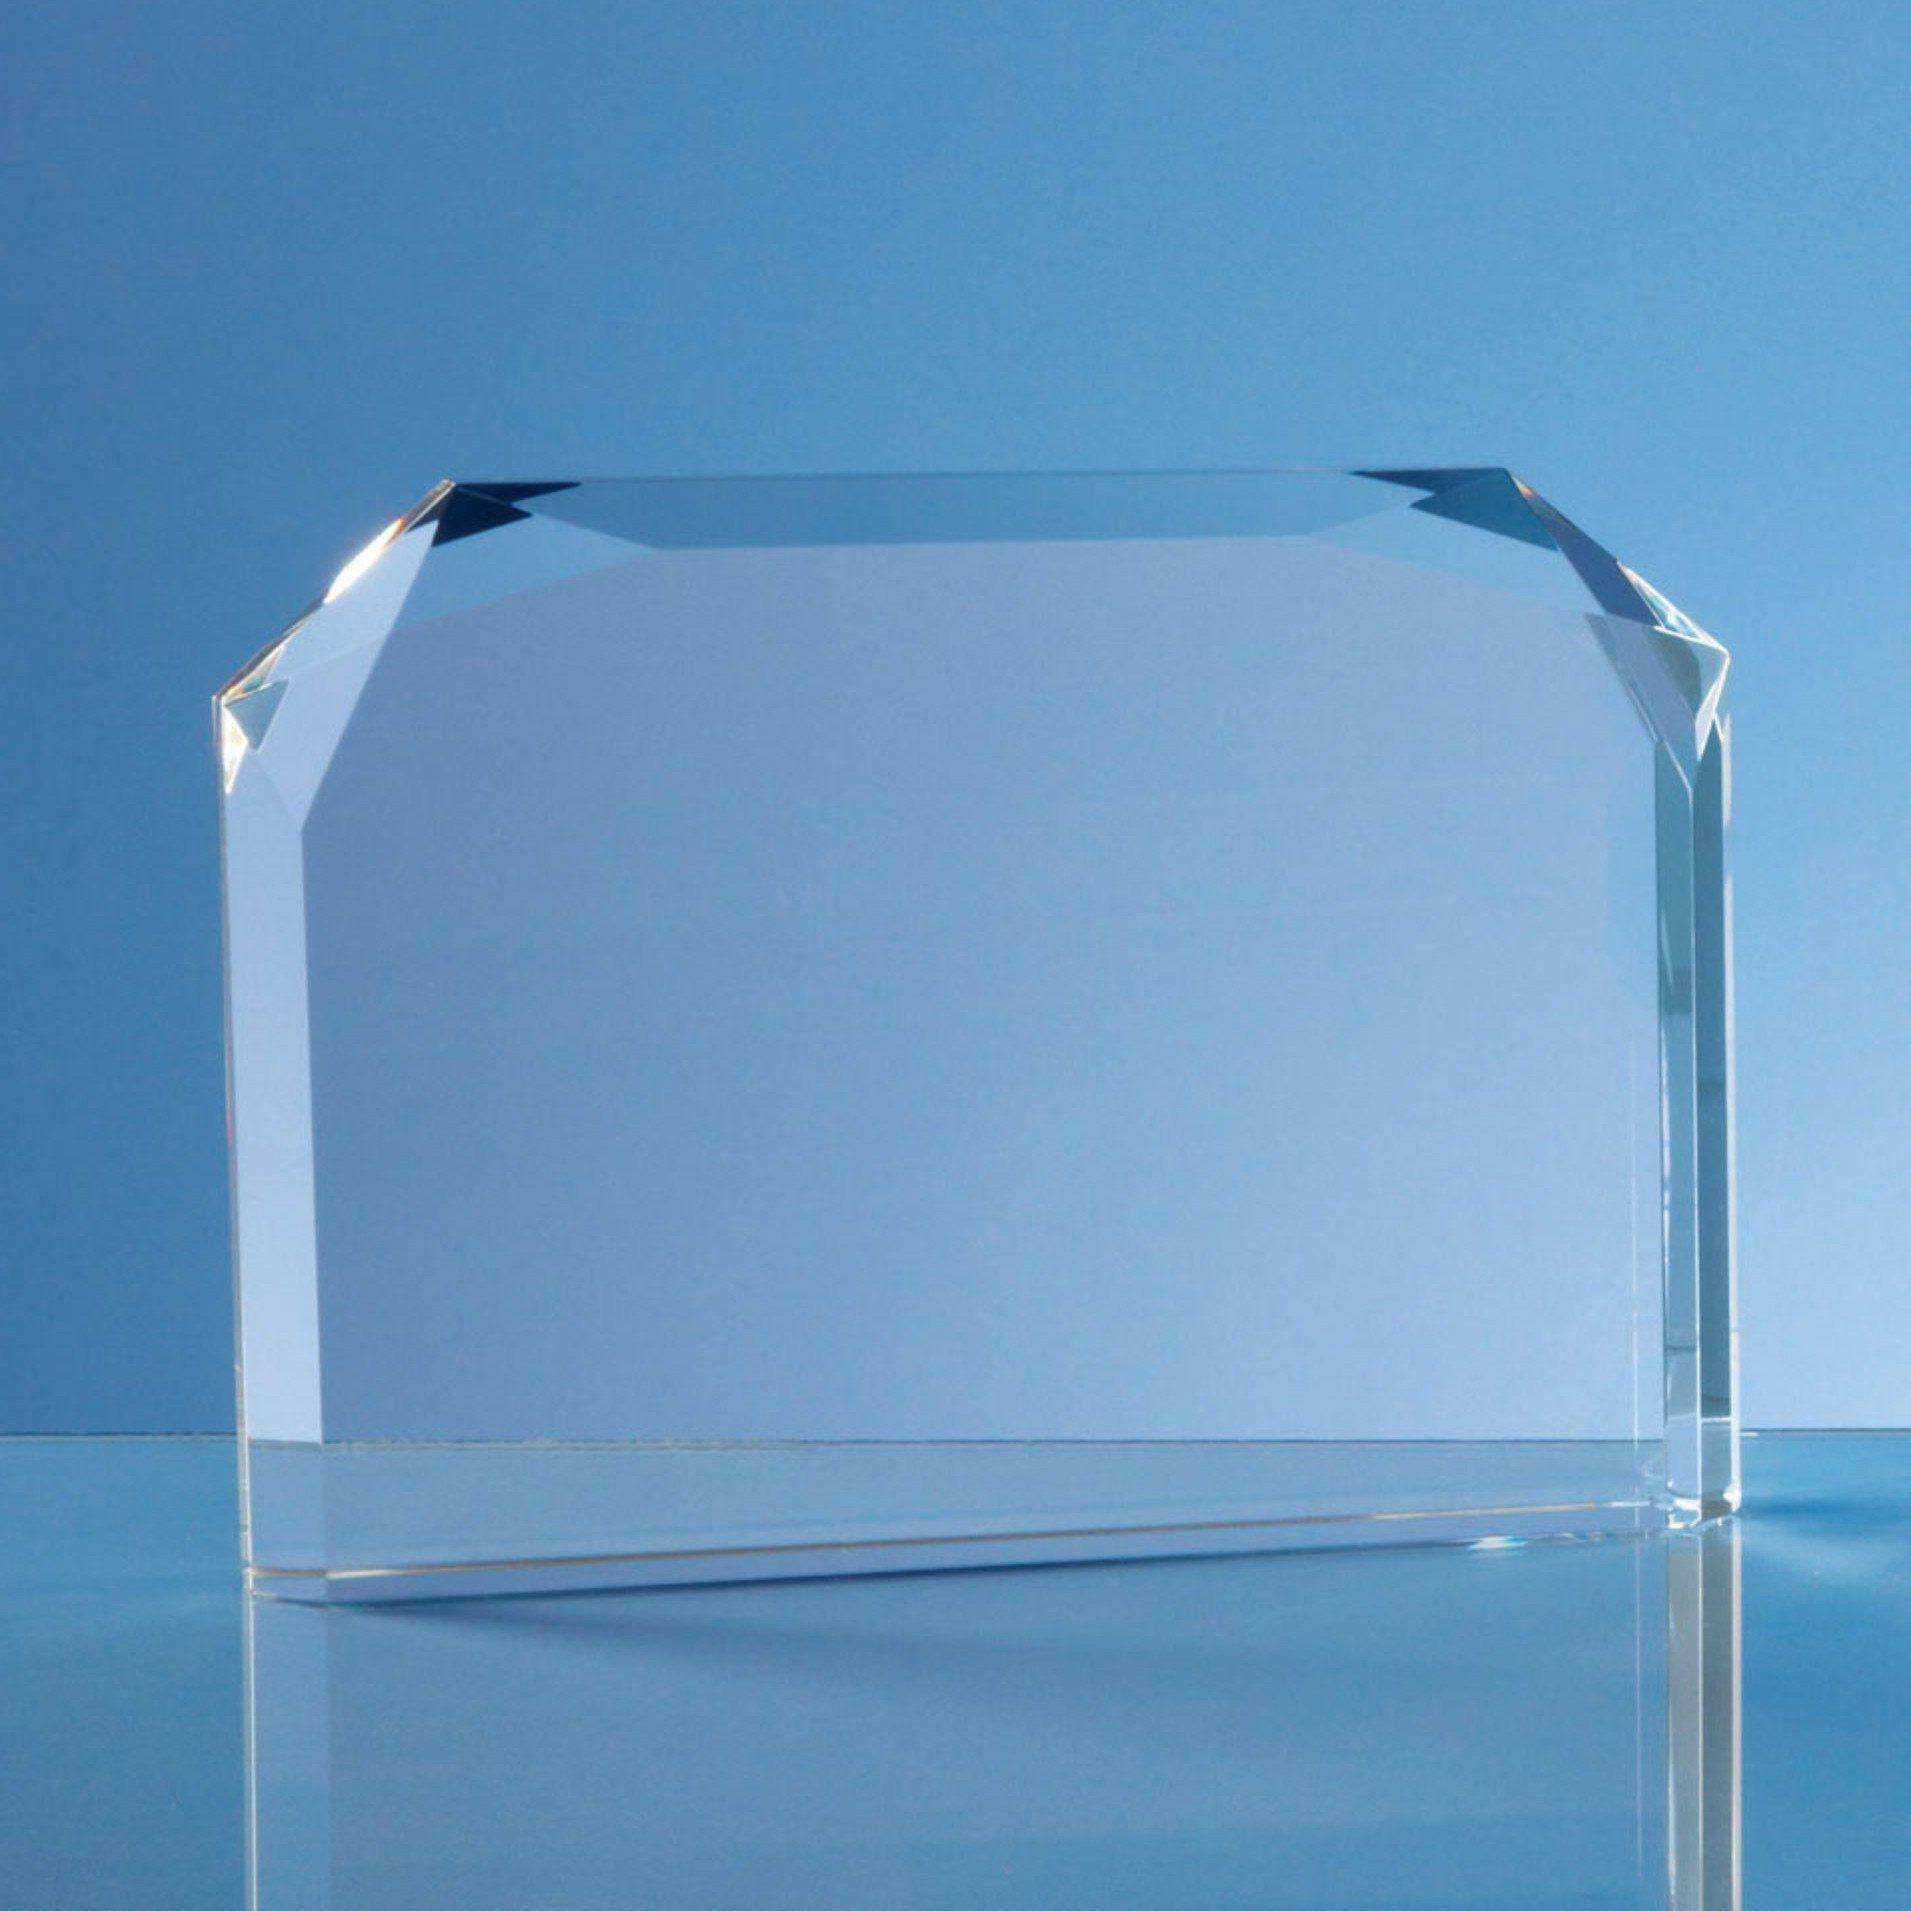 Horizontal Facet Rectangle Award Glass Awards Creative Awards